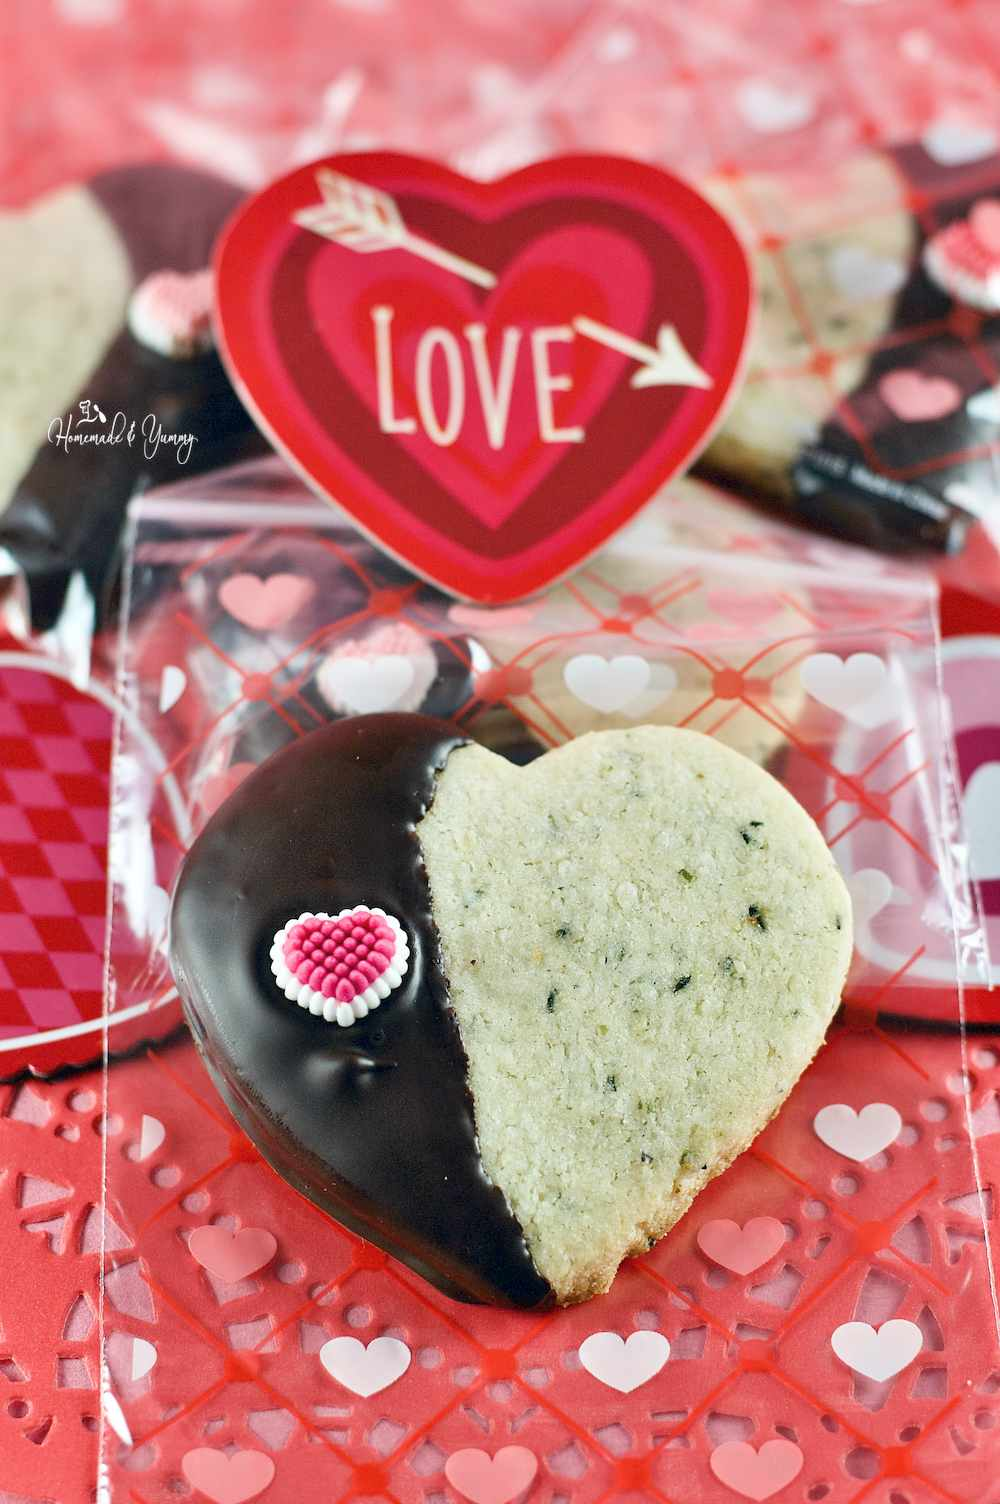 Valentine treat bag with a heart shaped cookie made with hemp seeds